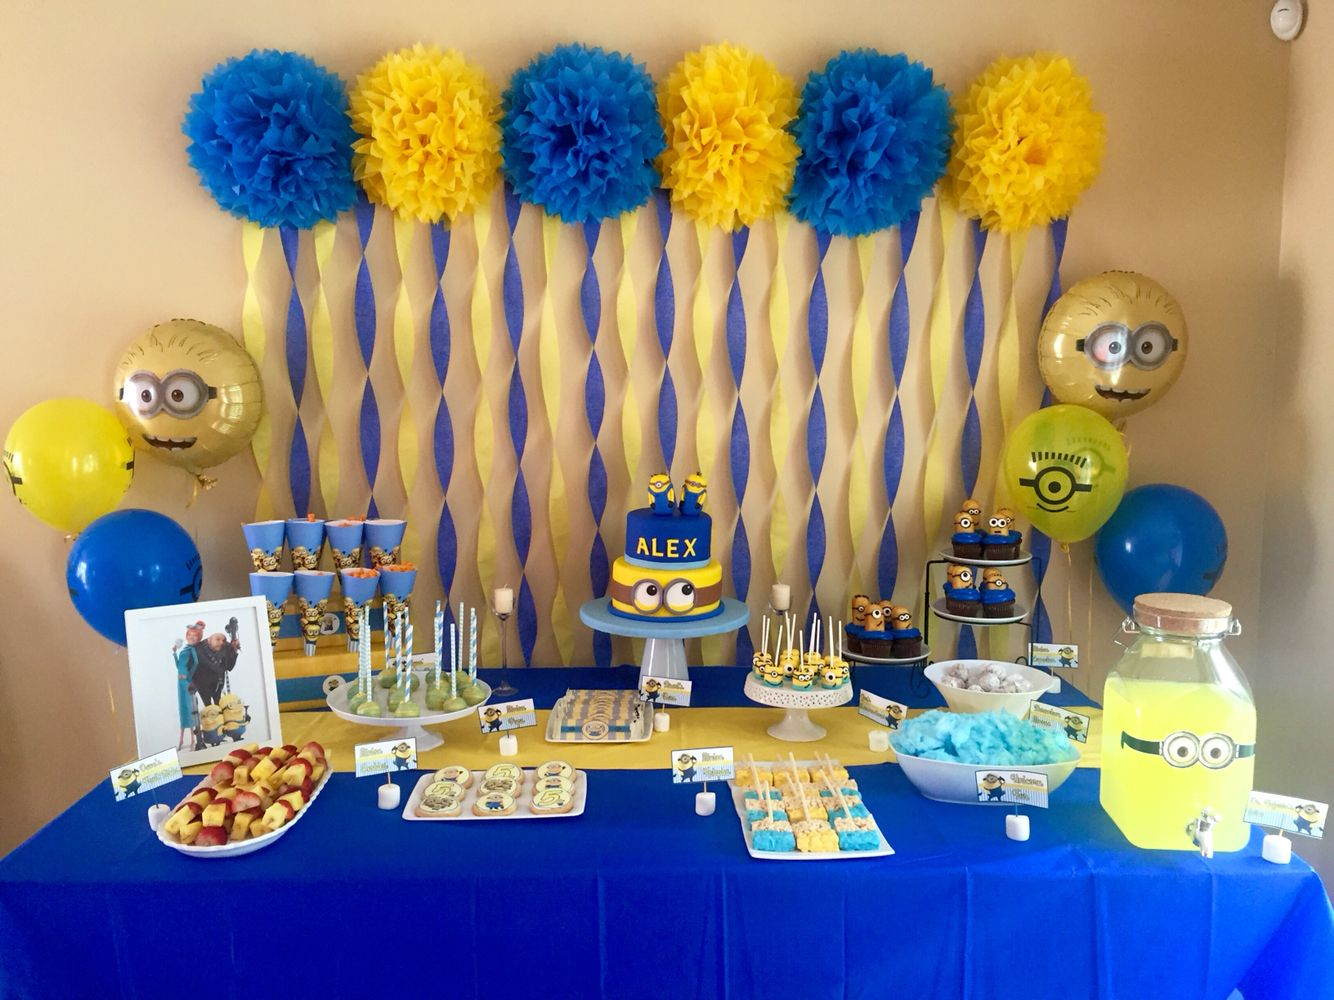 Alexs 5th Minion Birthday Party My Funnest Setup YET Tags Minions Boys Yellow And Blue Poms Streamers Snack Table Snacks